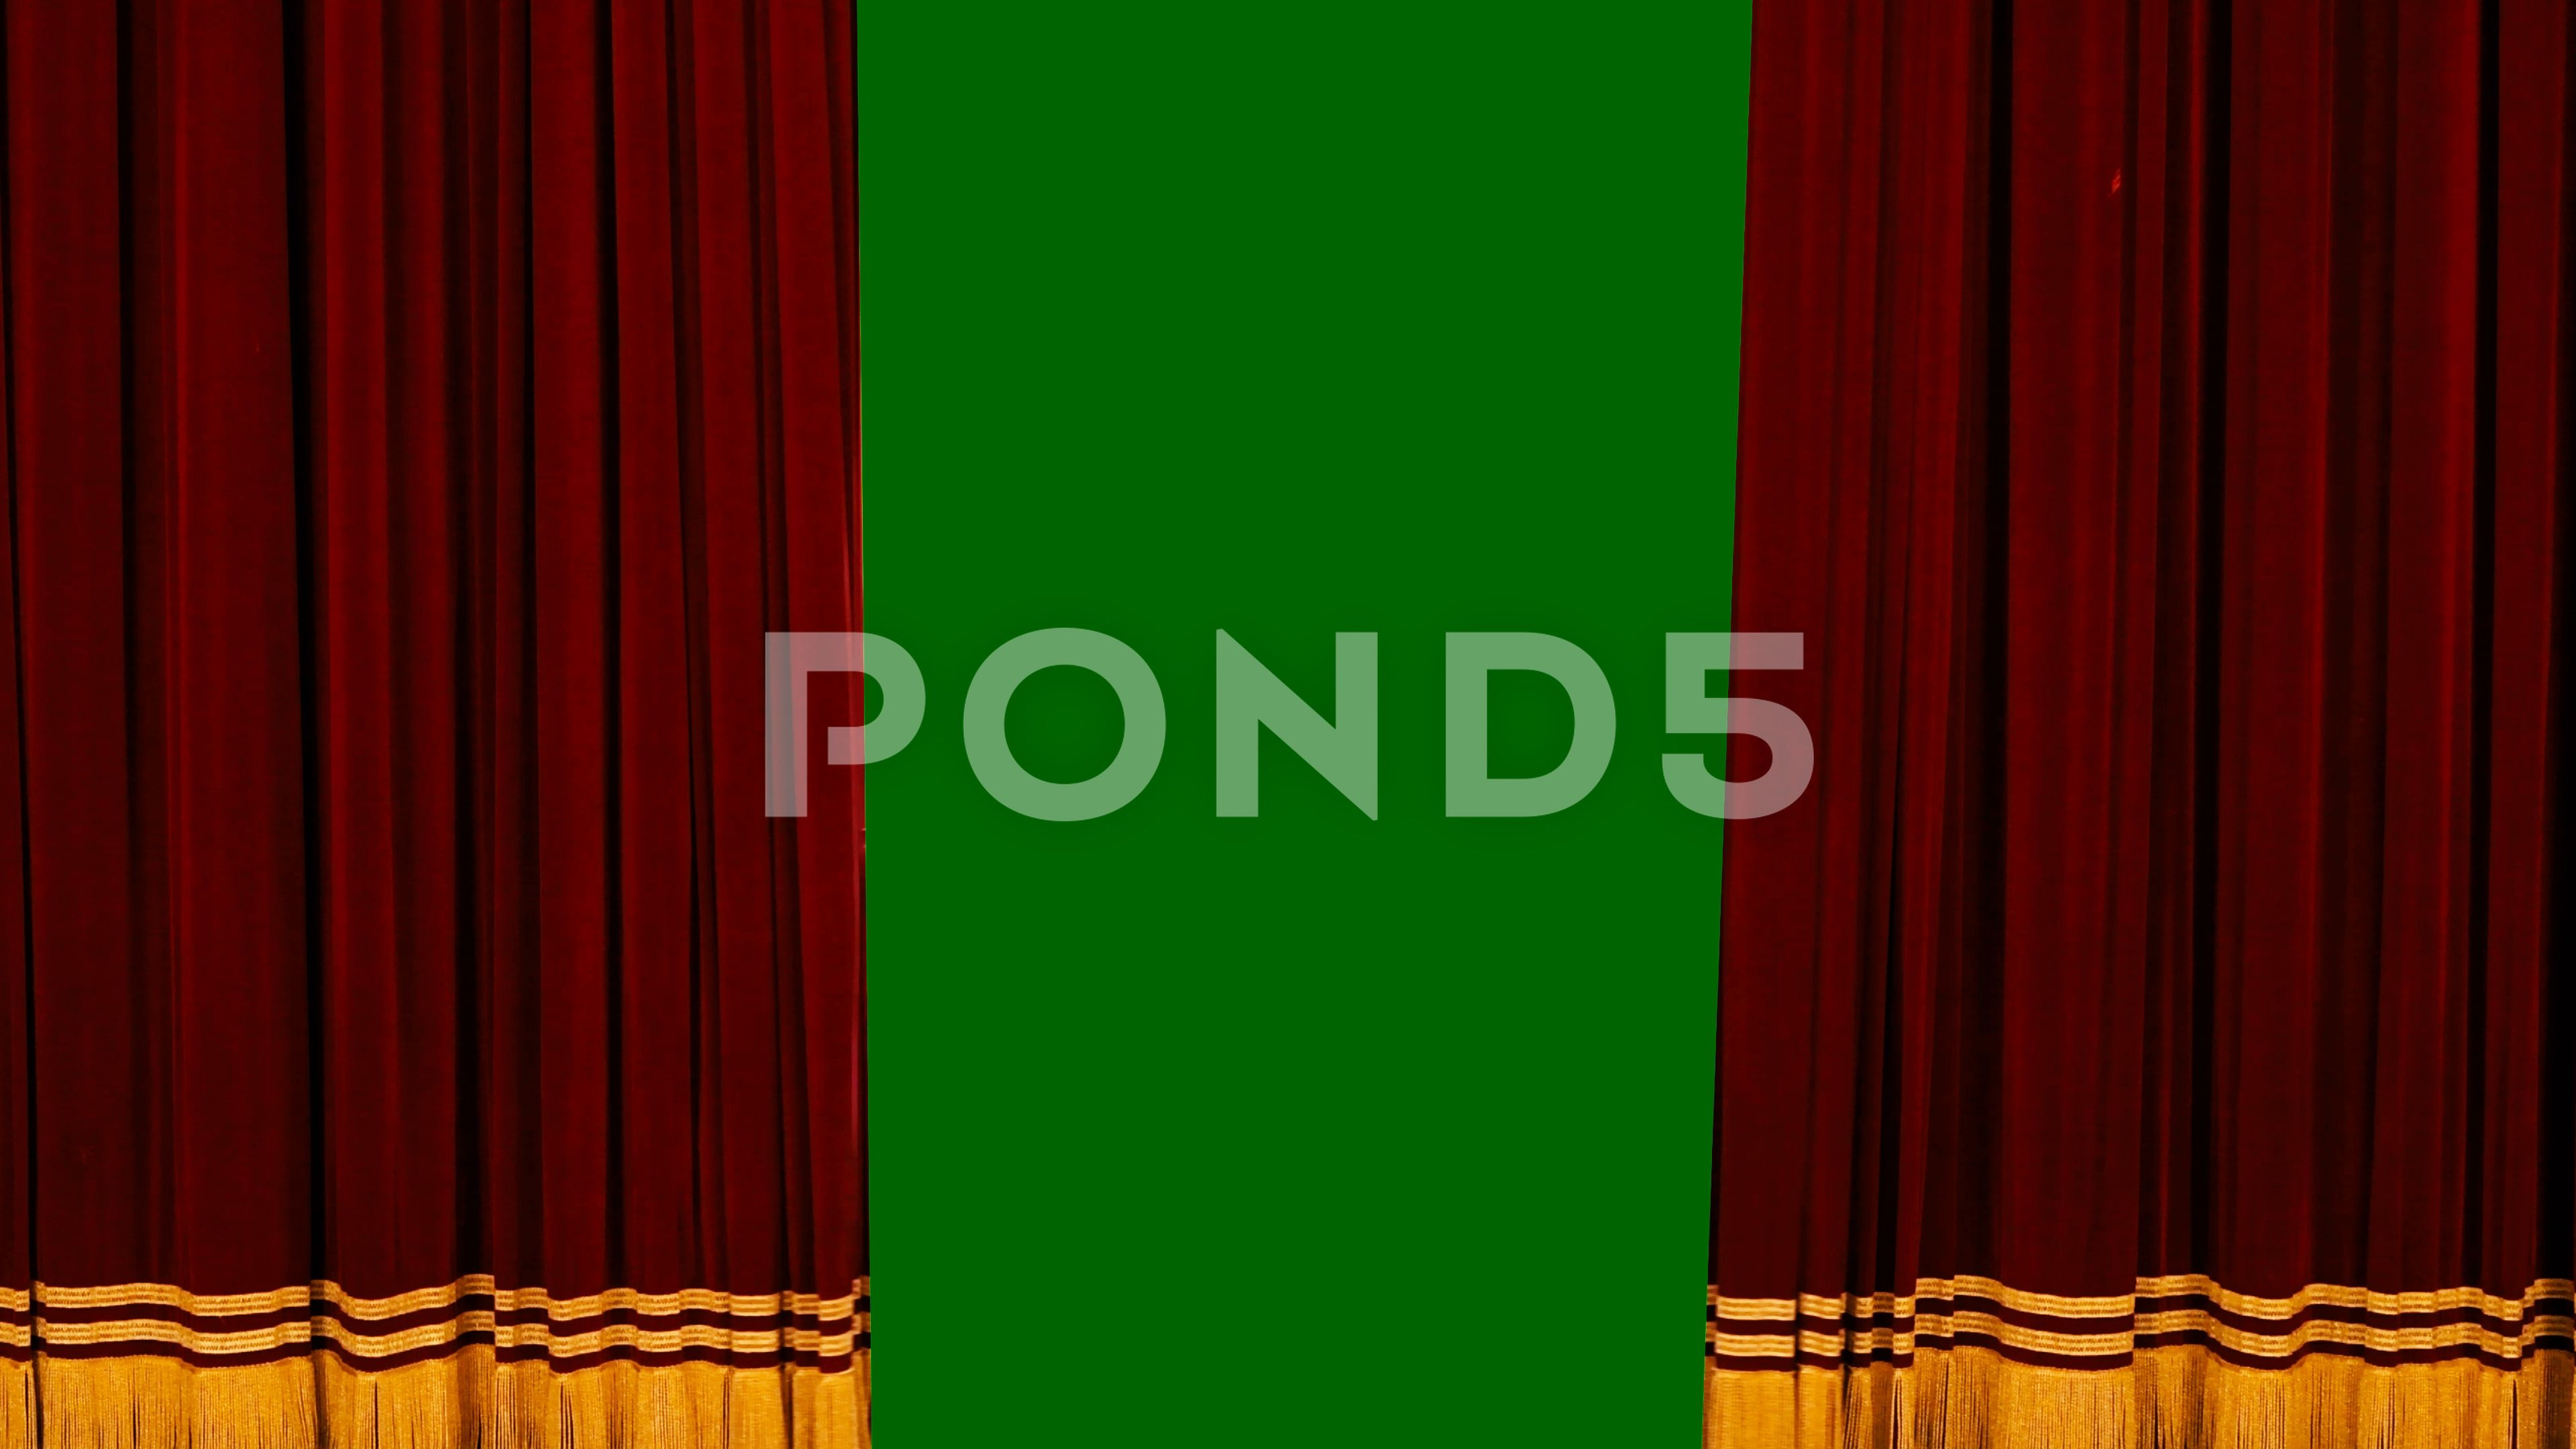 theatre red curtain opening with green